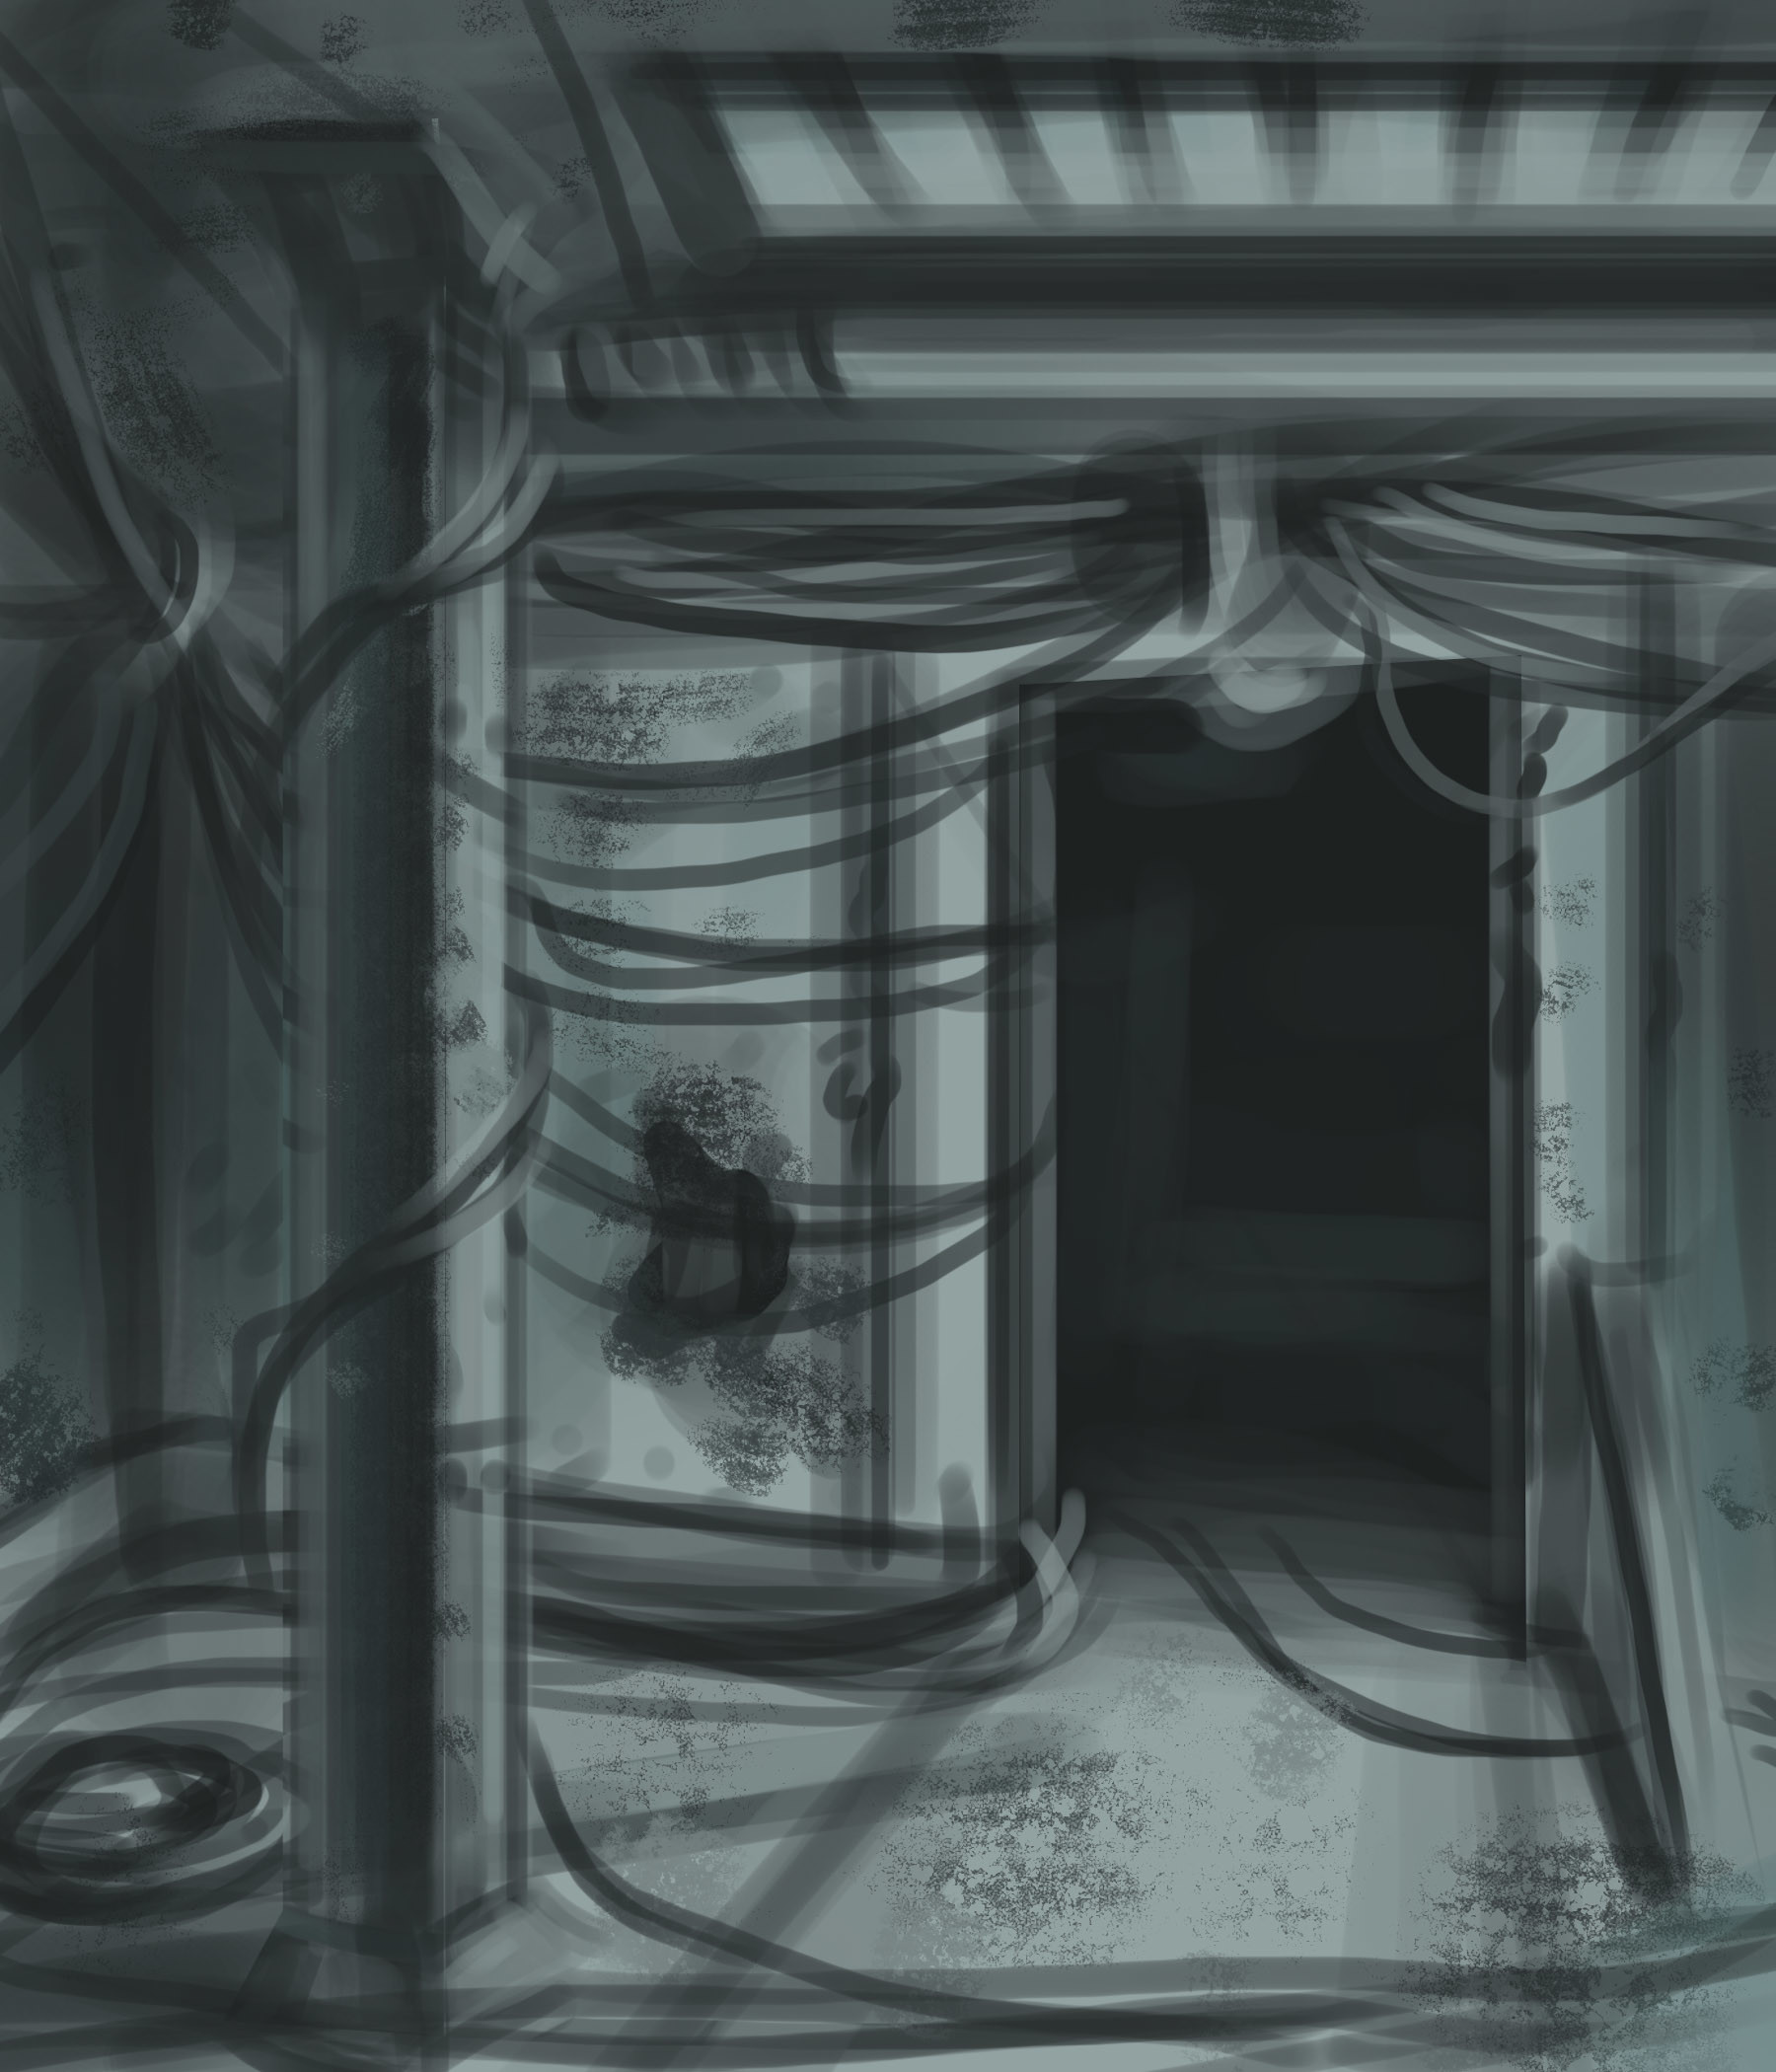 Jake siano interiorsketch2